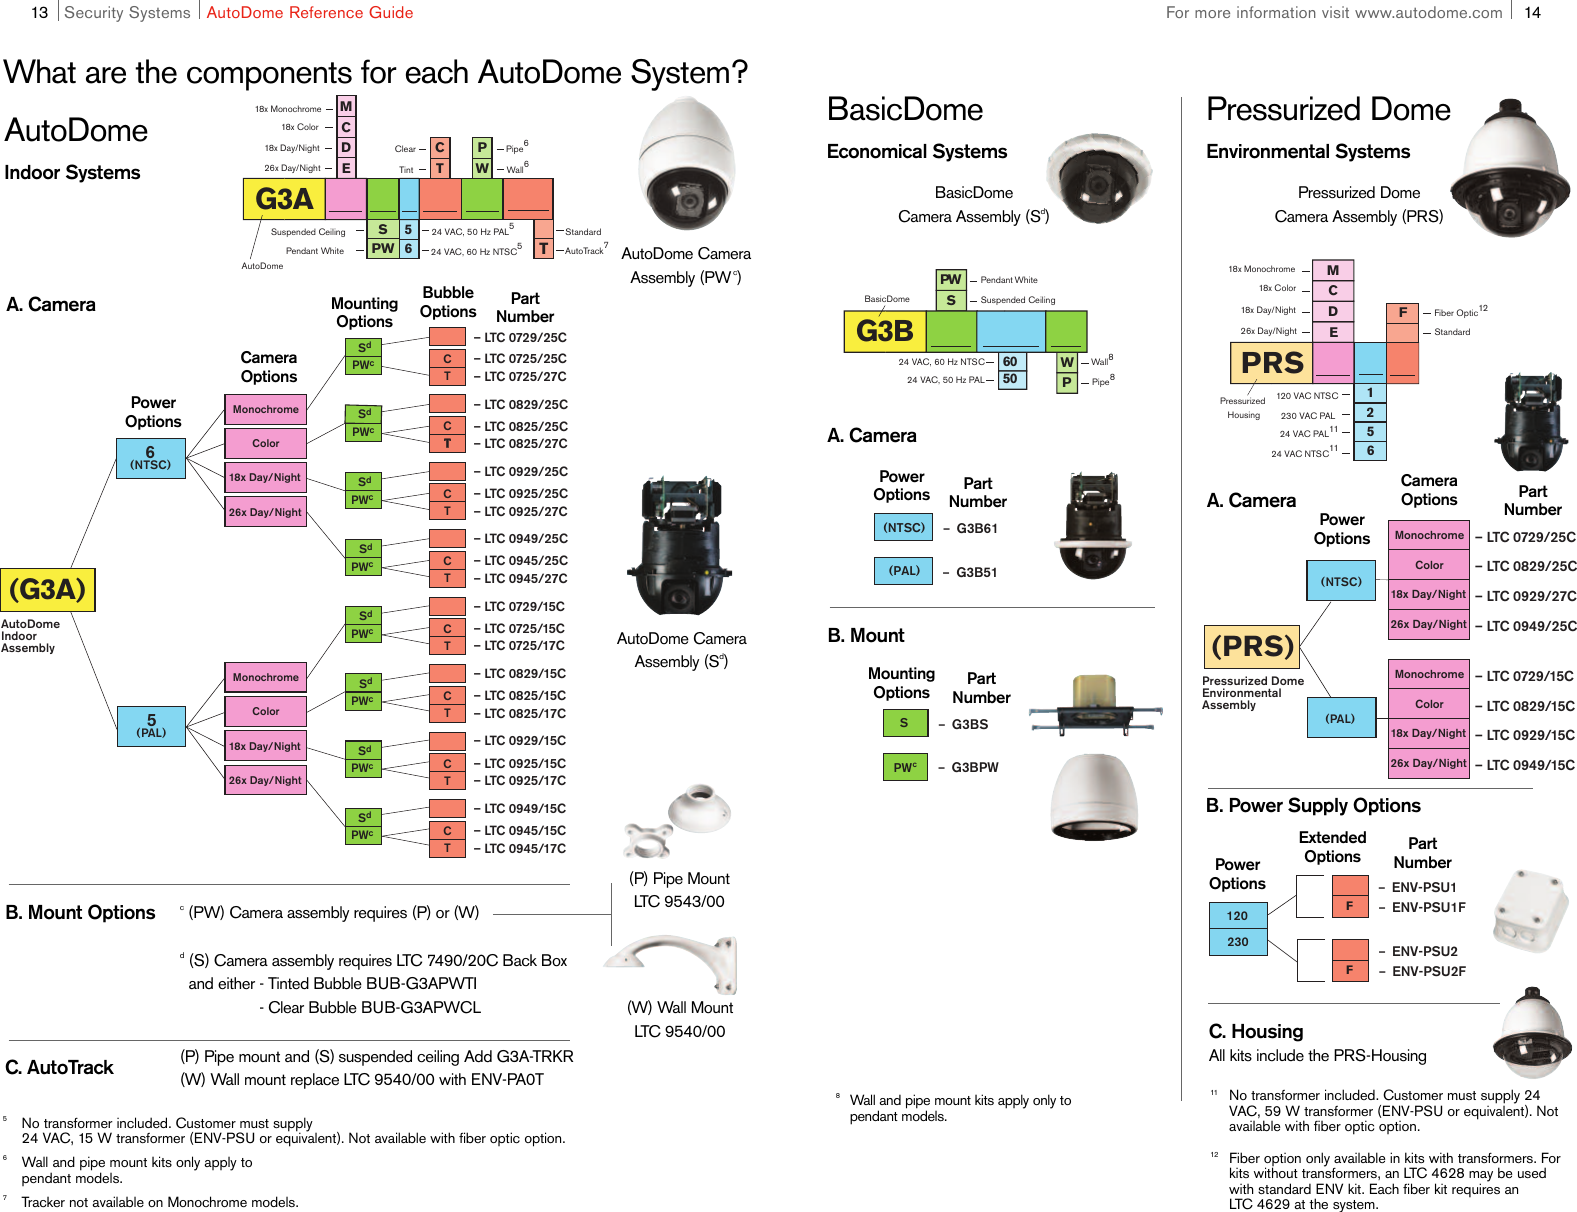 Boschhome bosch appliances security camera f01u002316c users manual page 8 of 12 boschhome boschhome bosch appliances security camera cheapraybanclubmaster Image collections